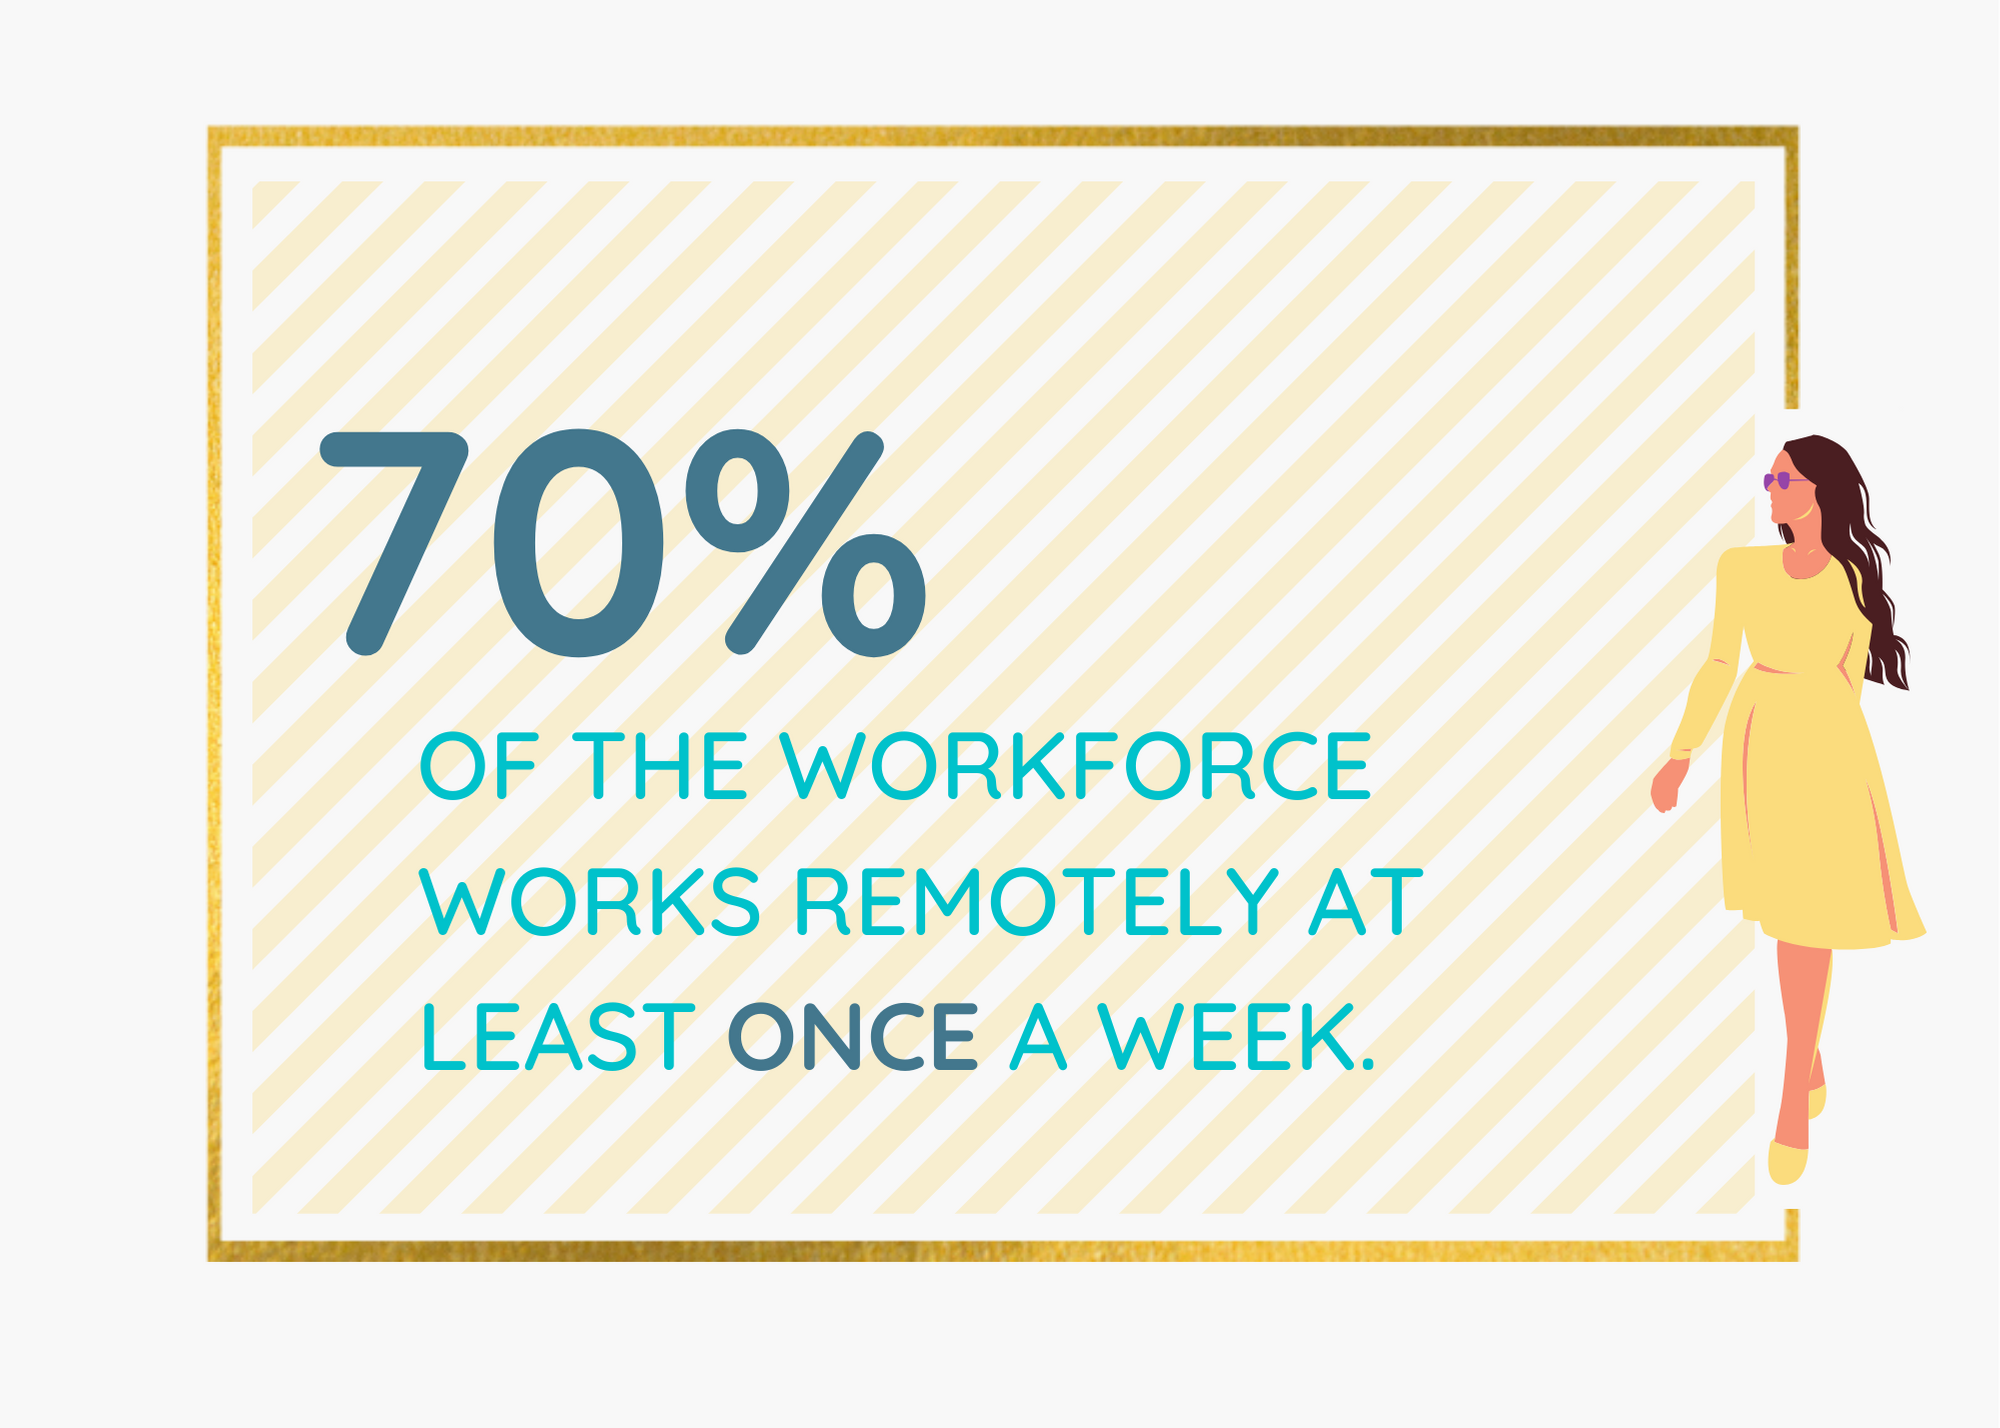 The Remote Work Revolution In 2020 Remote Work Going To Work Greenhouse Gases